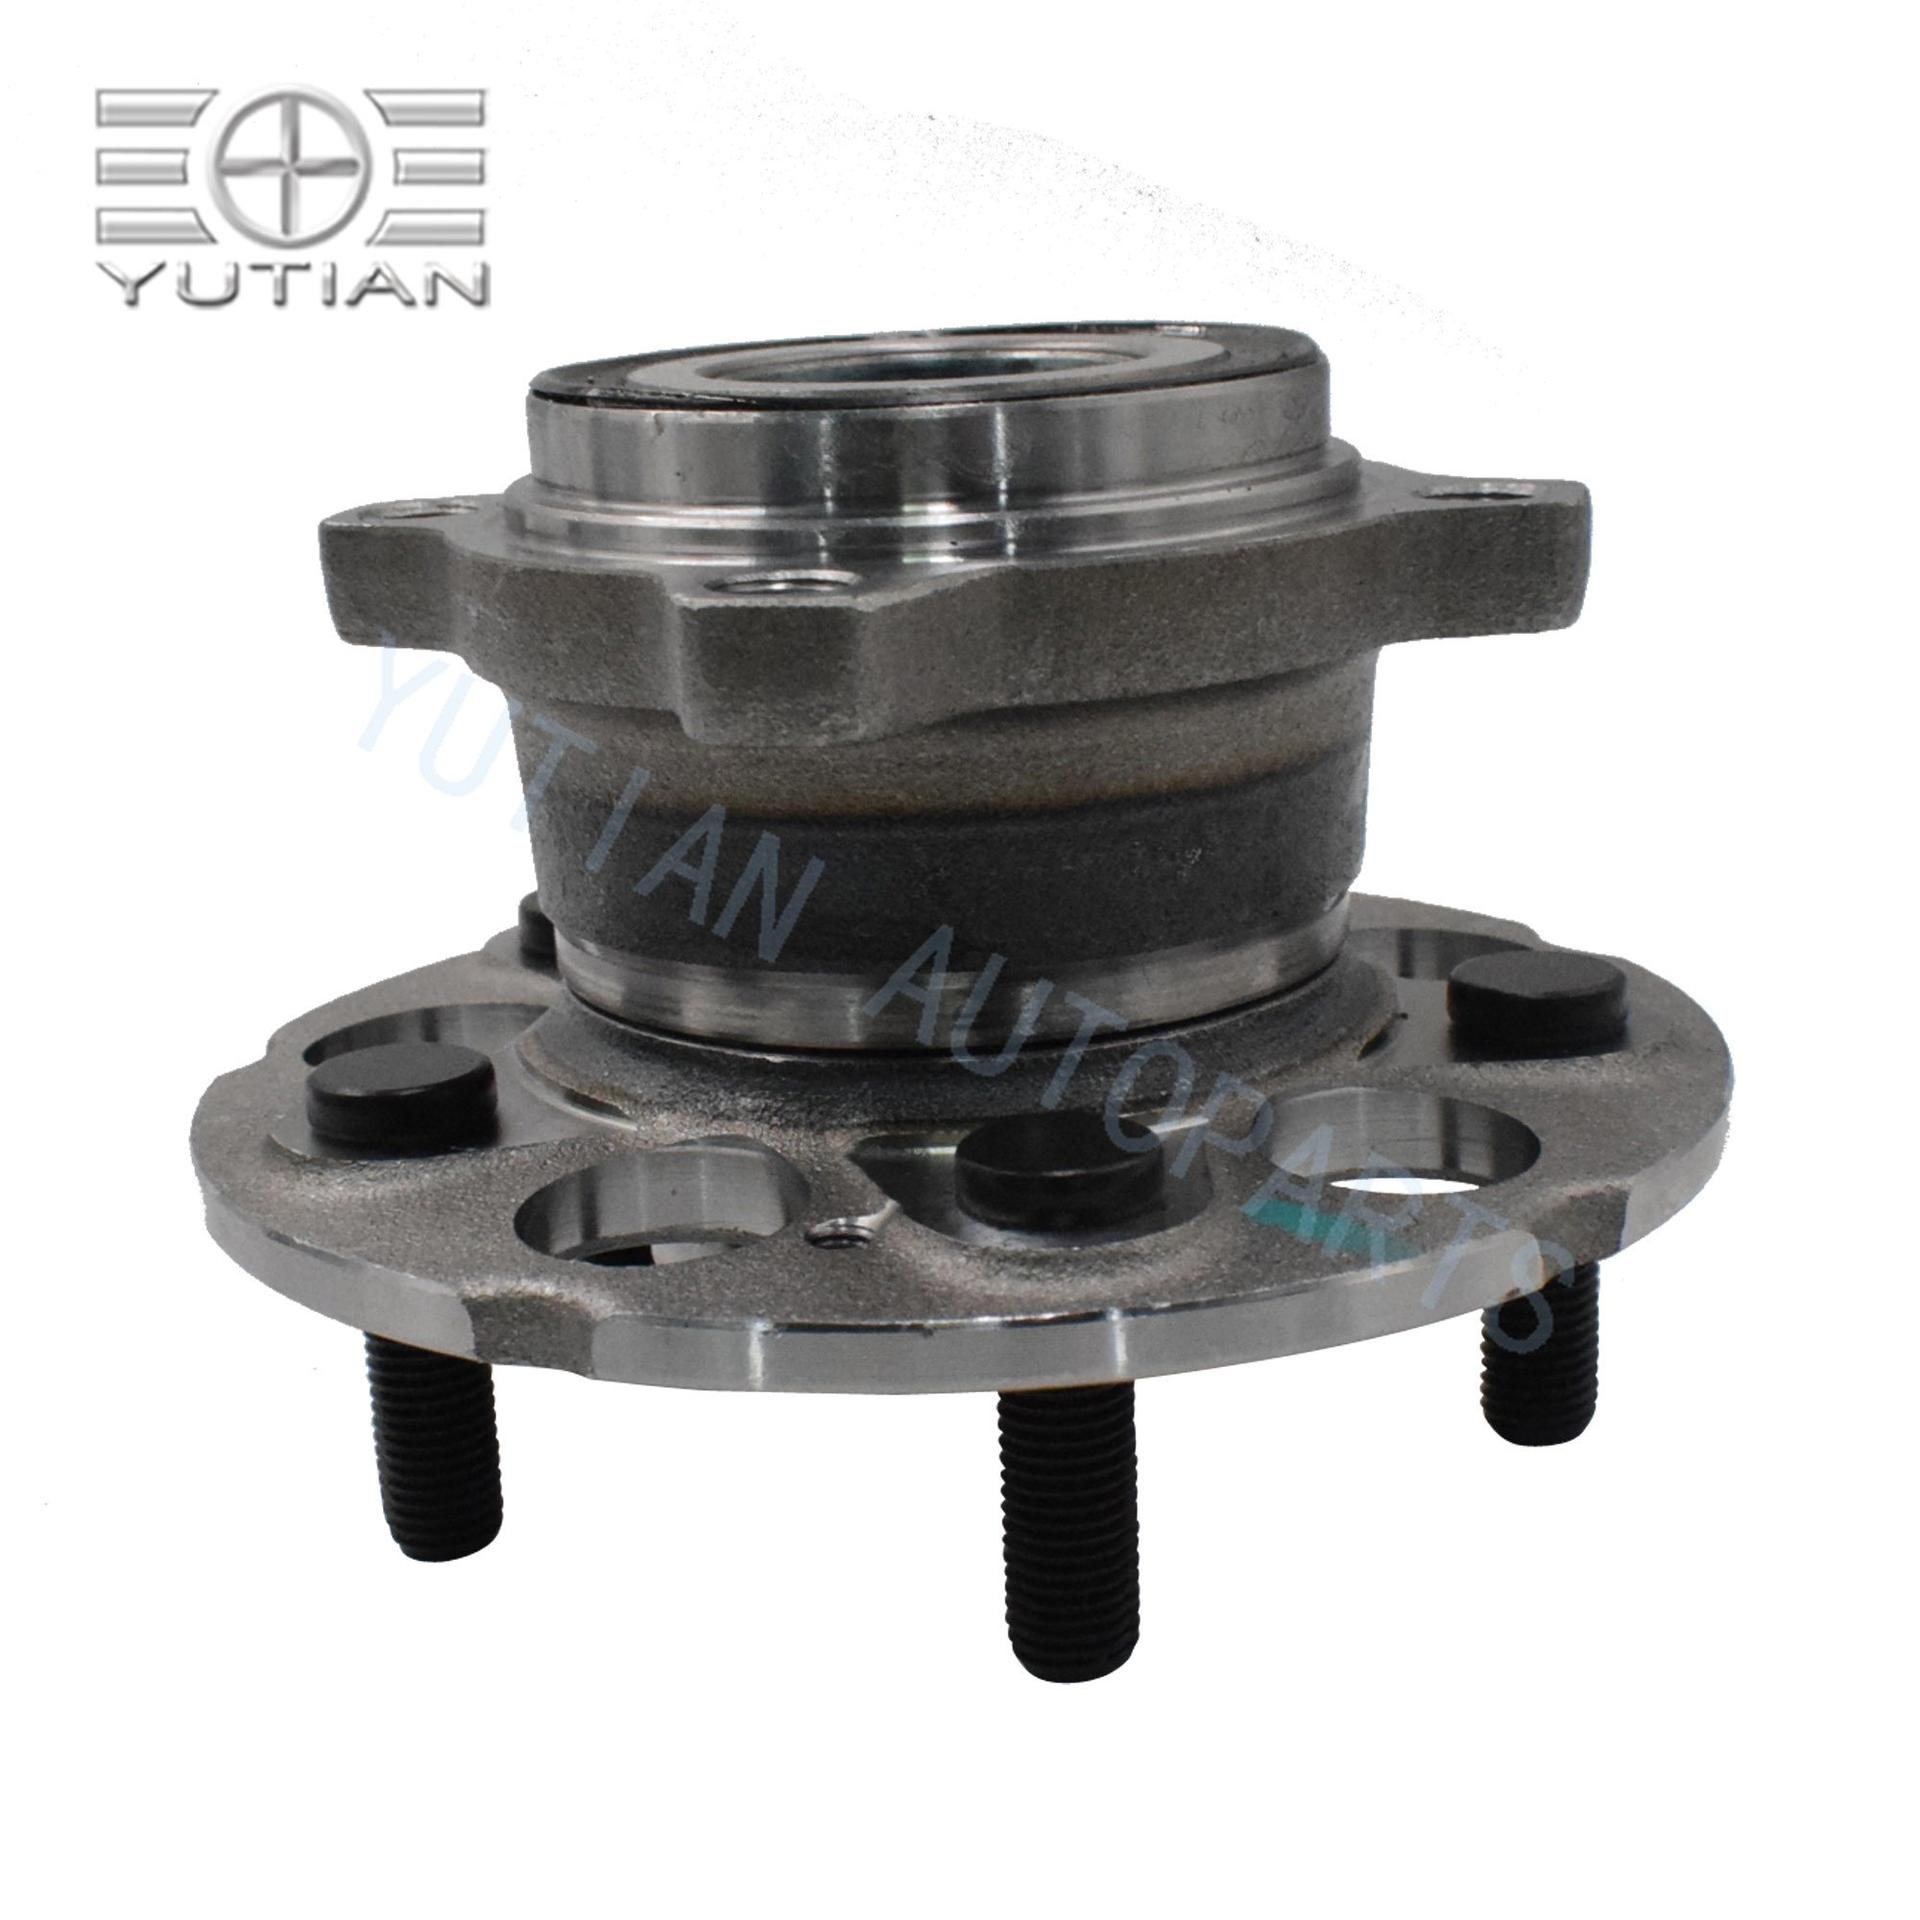 Front axle head for CRV 07-11 four-wheel drive OEM:42200-SWN-P01